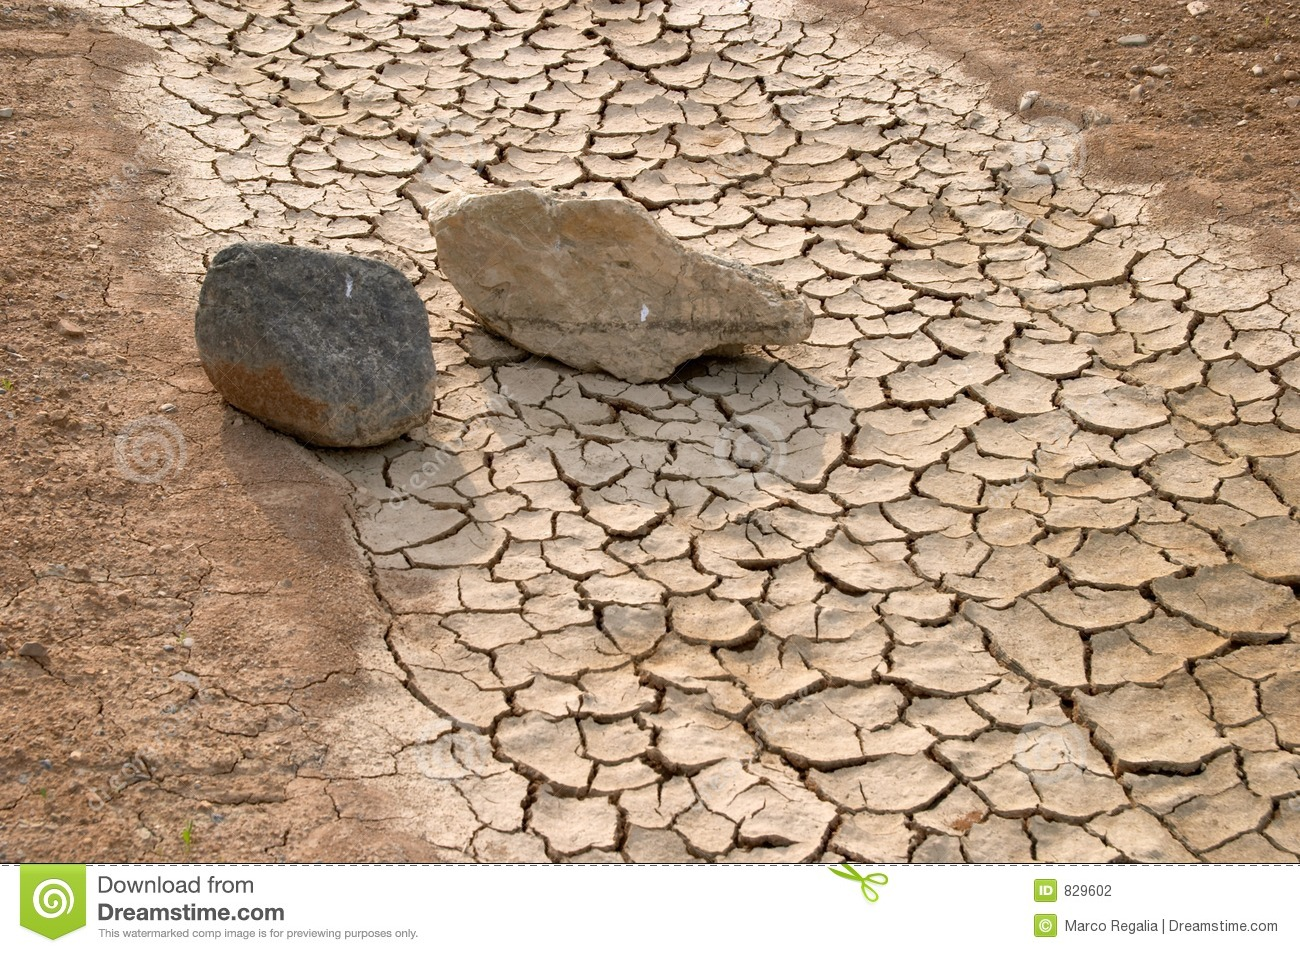 Stones in a dry river